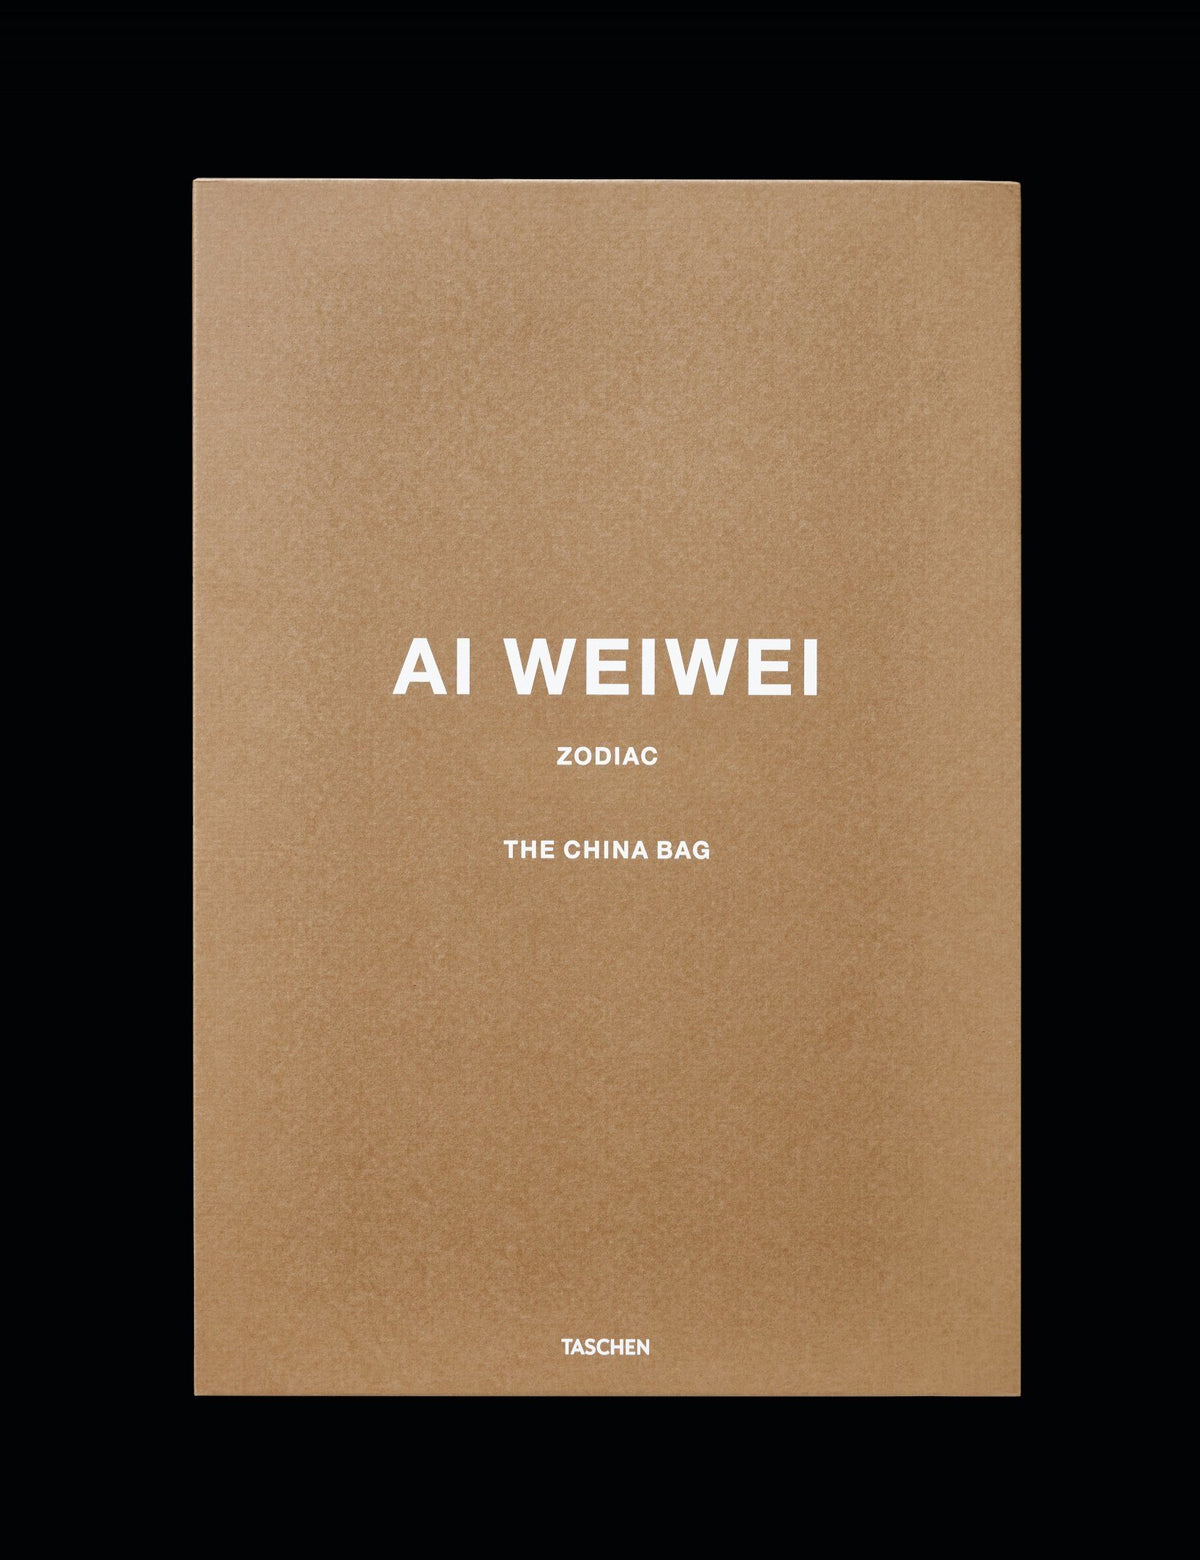 Ai Weiwei - The China Bag 'Zodiac' Limited Edition